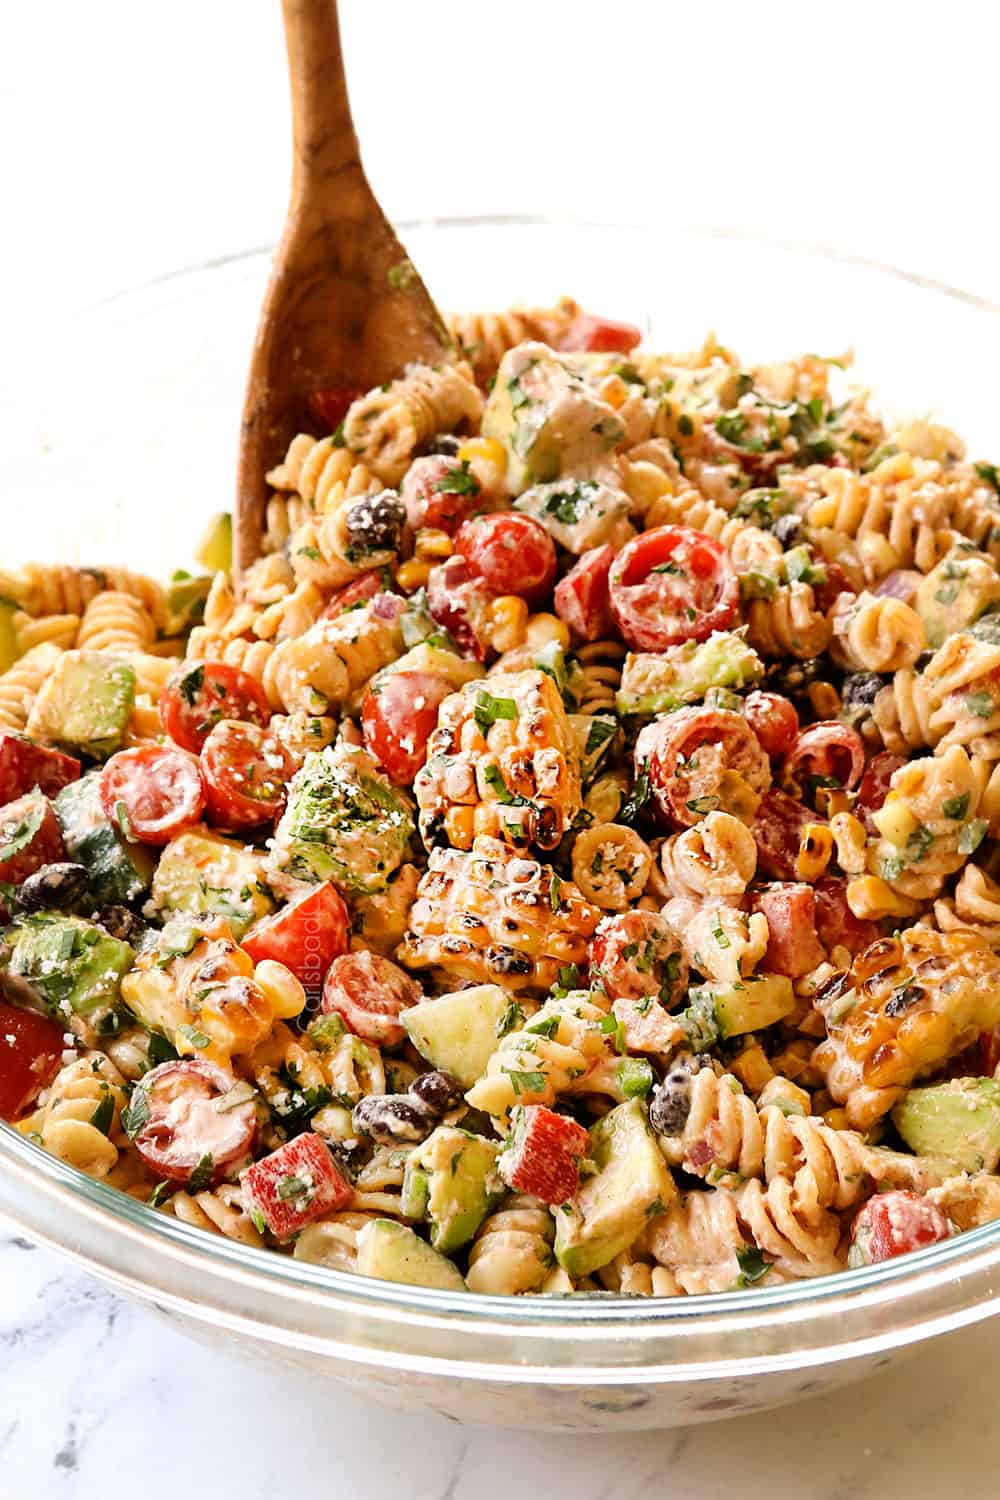 tossing Mexican pasta salad together in a glass bowl